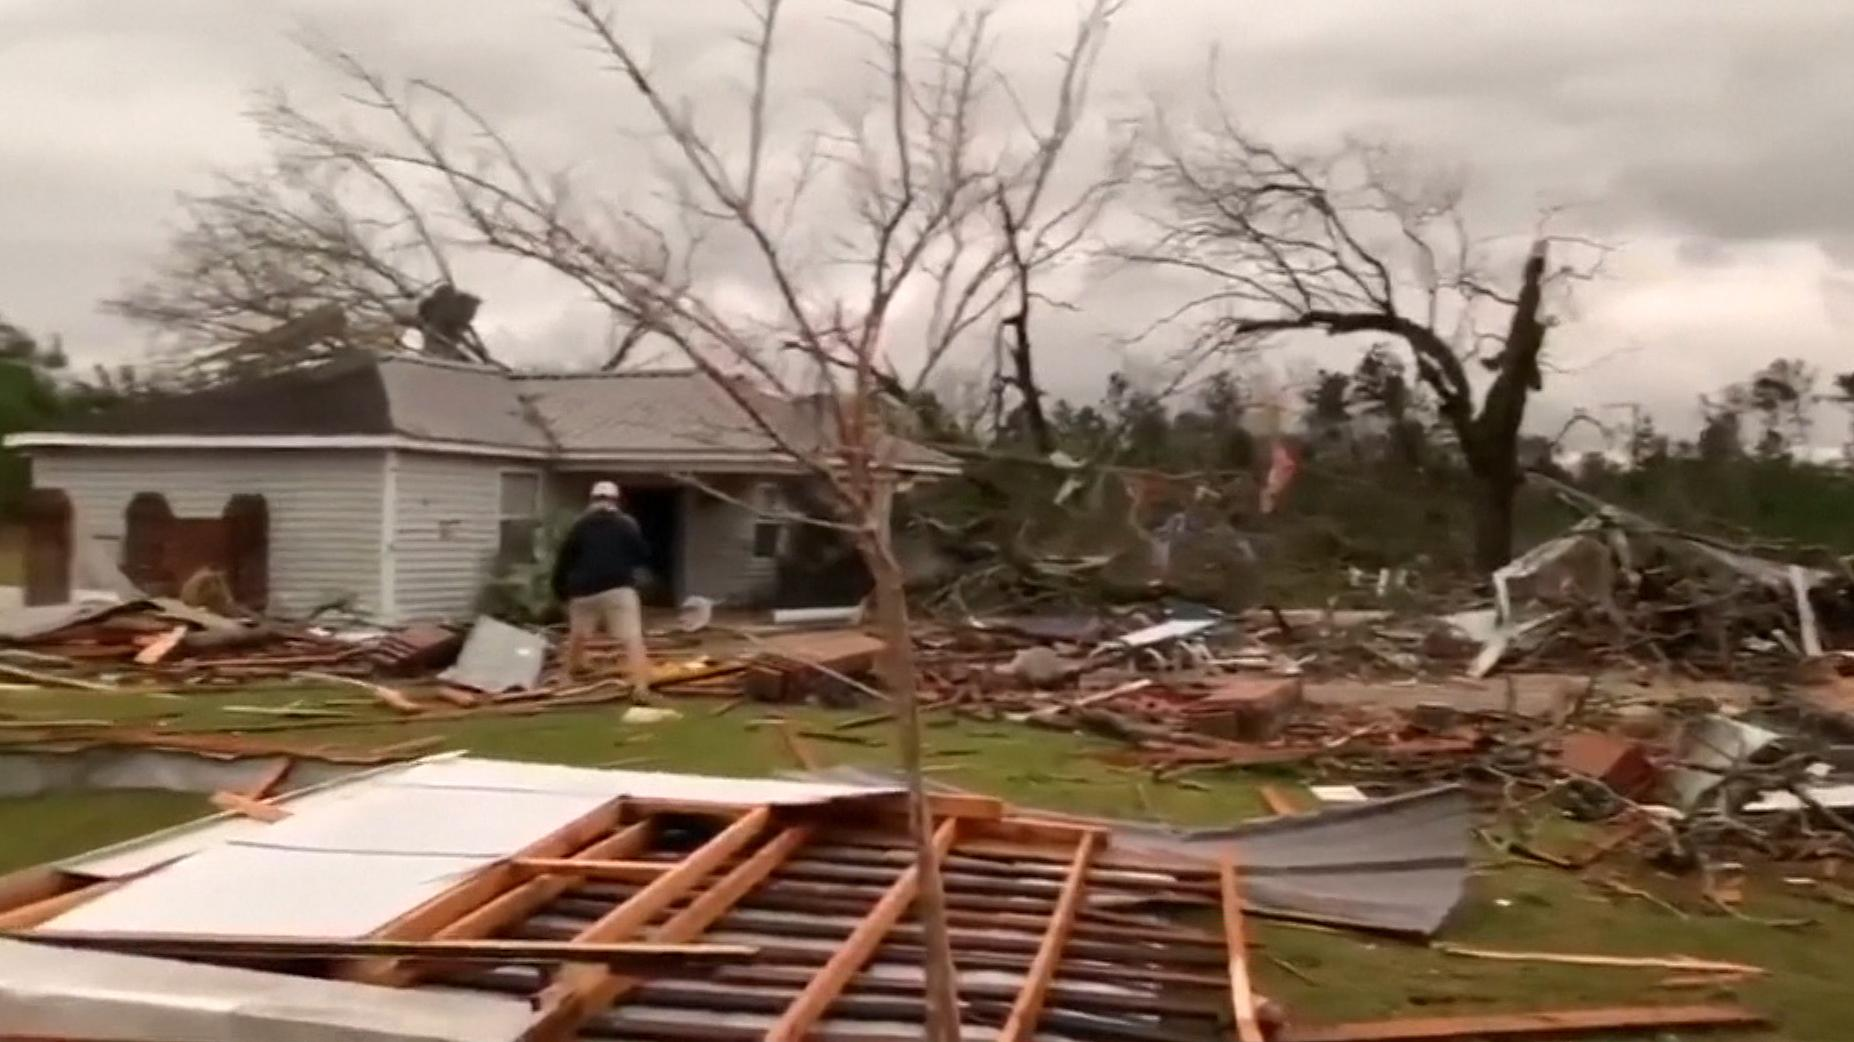 Tornado-Schäden in Beauregard/Alabama